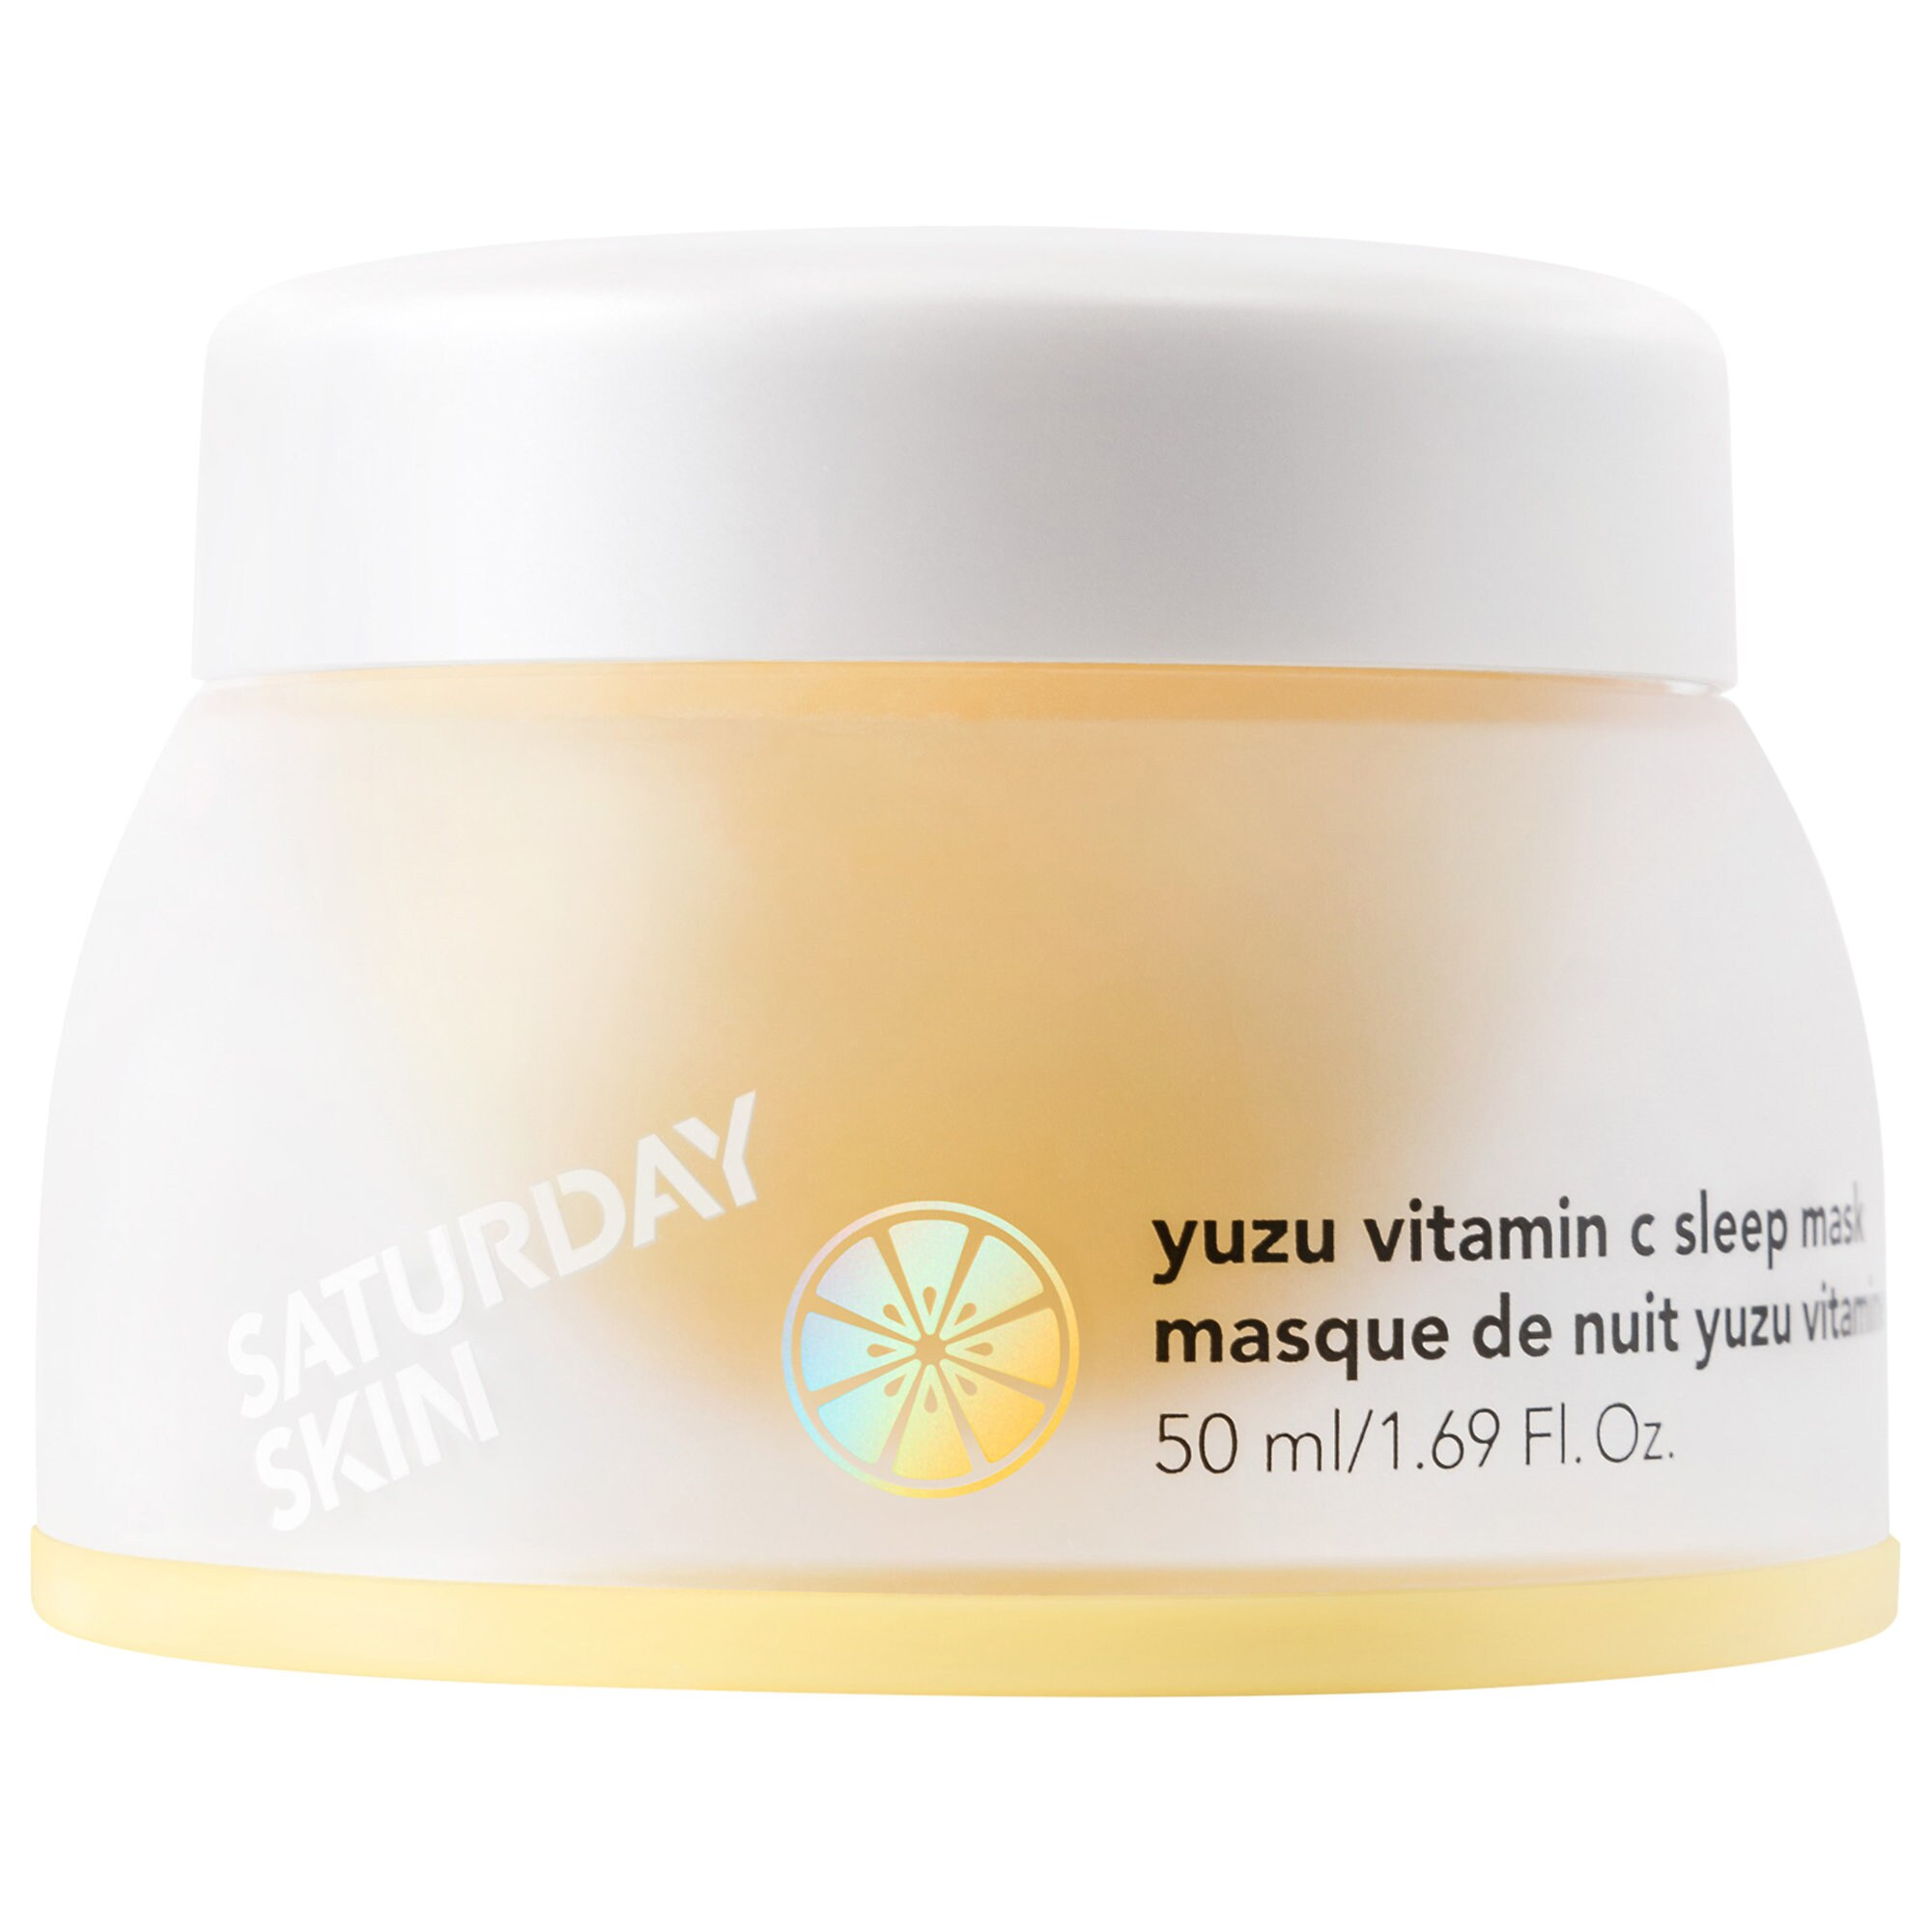 Saturday Skin - Yuzu Vitamin C Sleep Mask